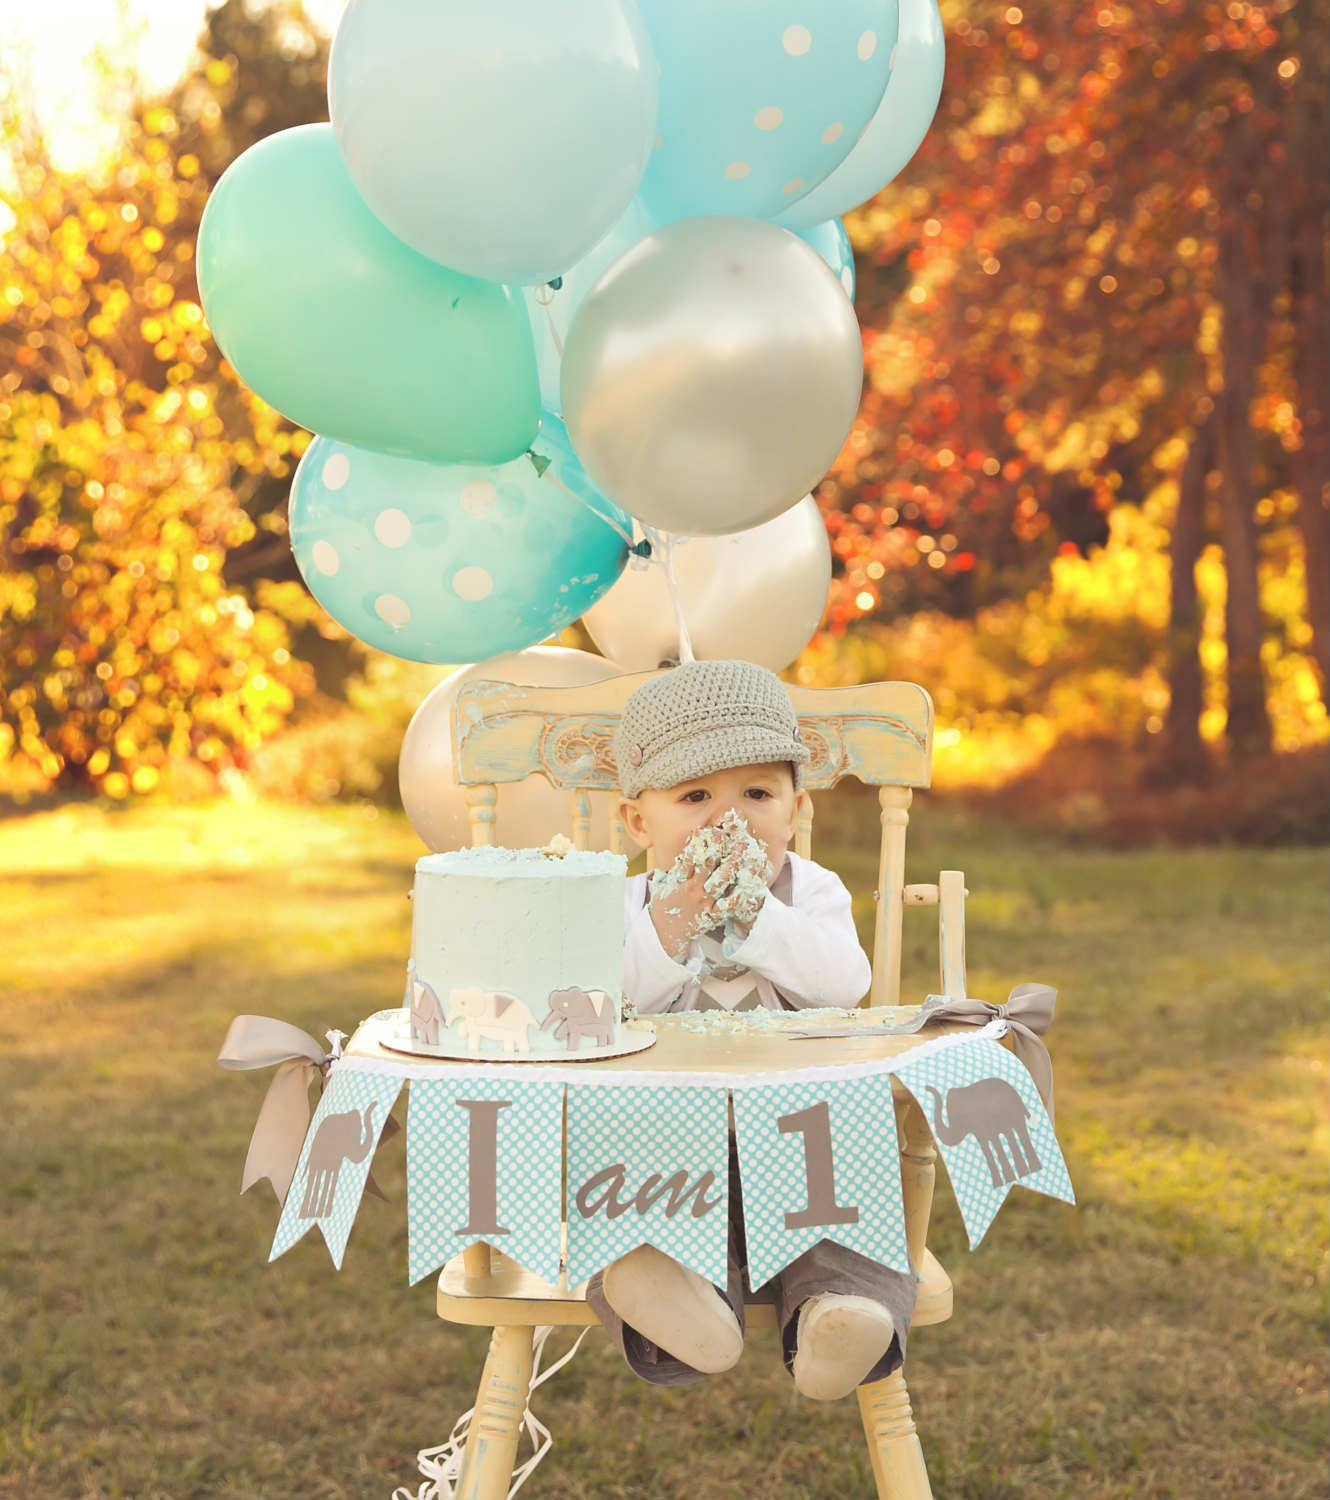 10 1st Birthday Party Ideas for Boys Part 2 Birthday decorations